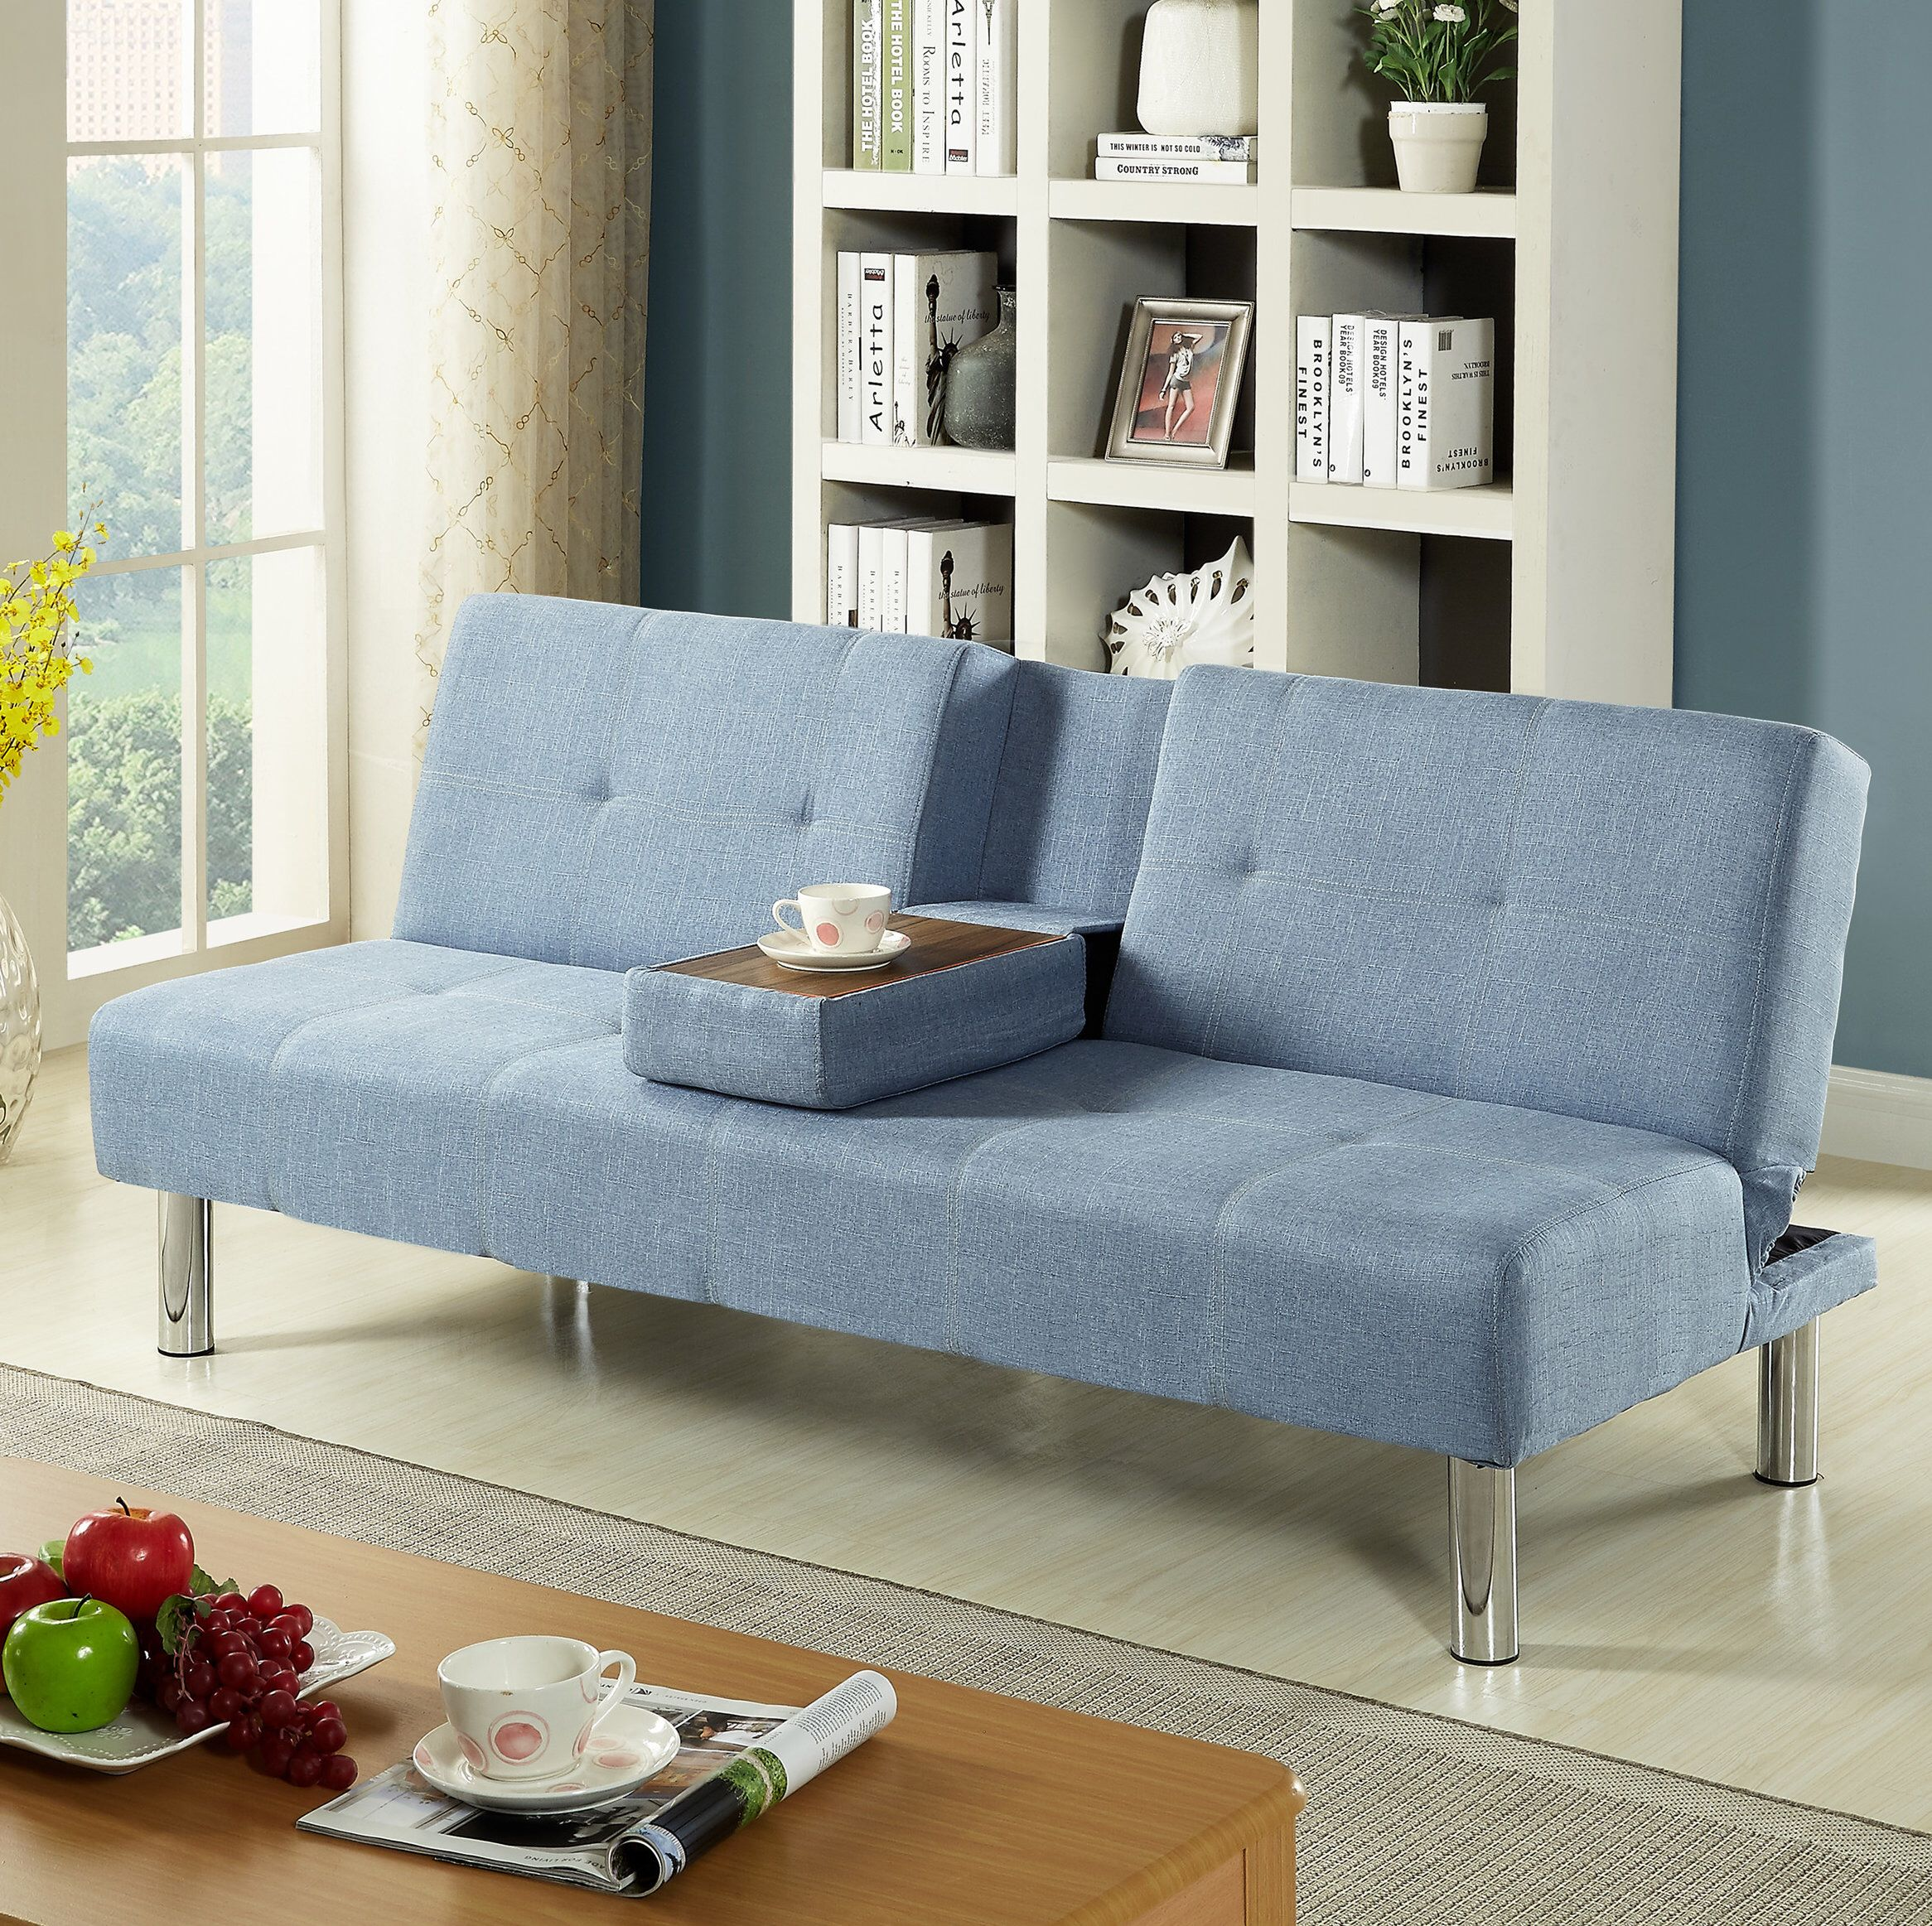 Cian Convertible sofa Folding sofa bed, Sofa frame